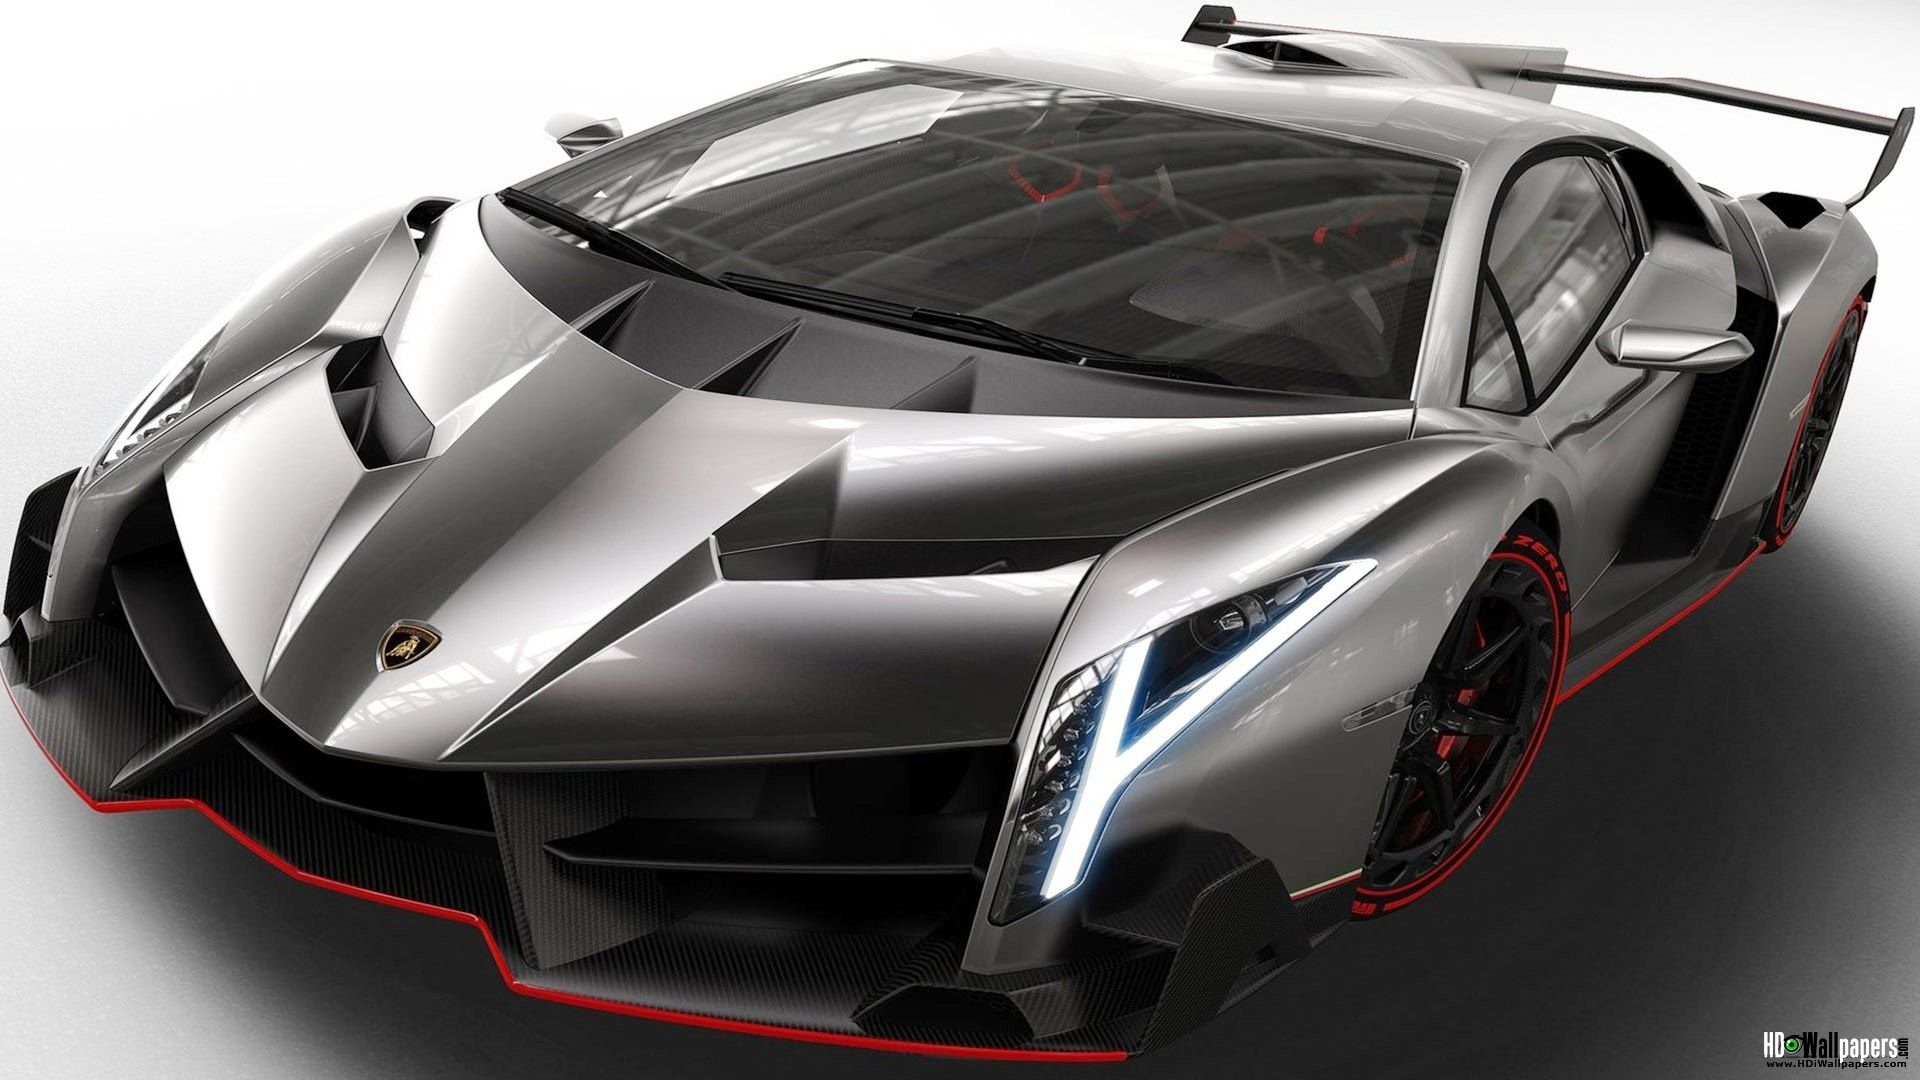 Fastest Car In The World Google Search Lamborghini Veneno Lamborghini Cars Lamborghini